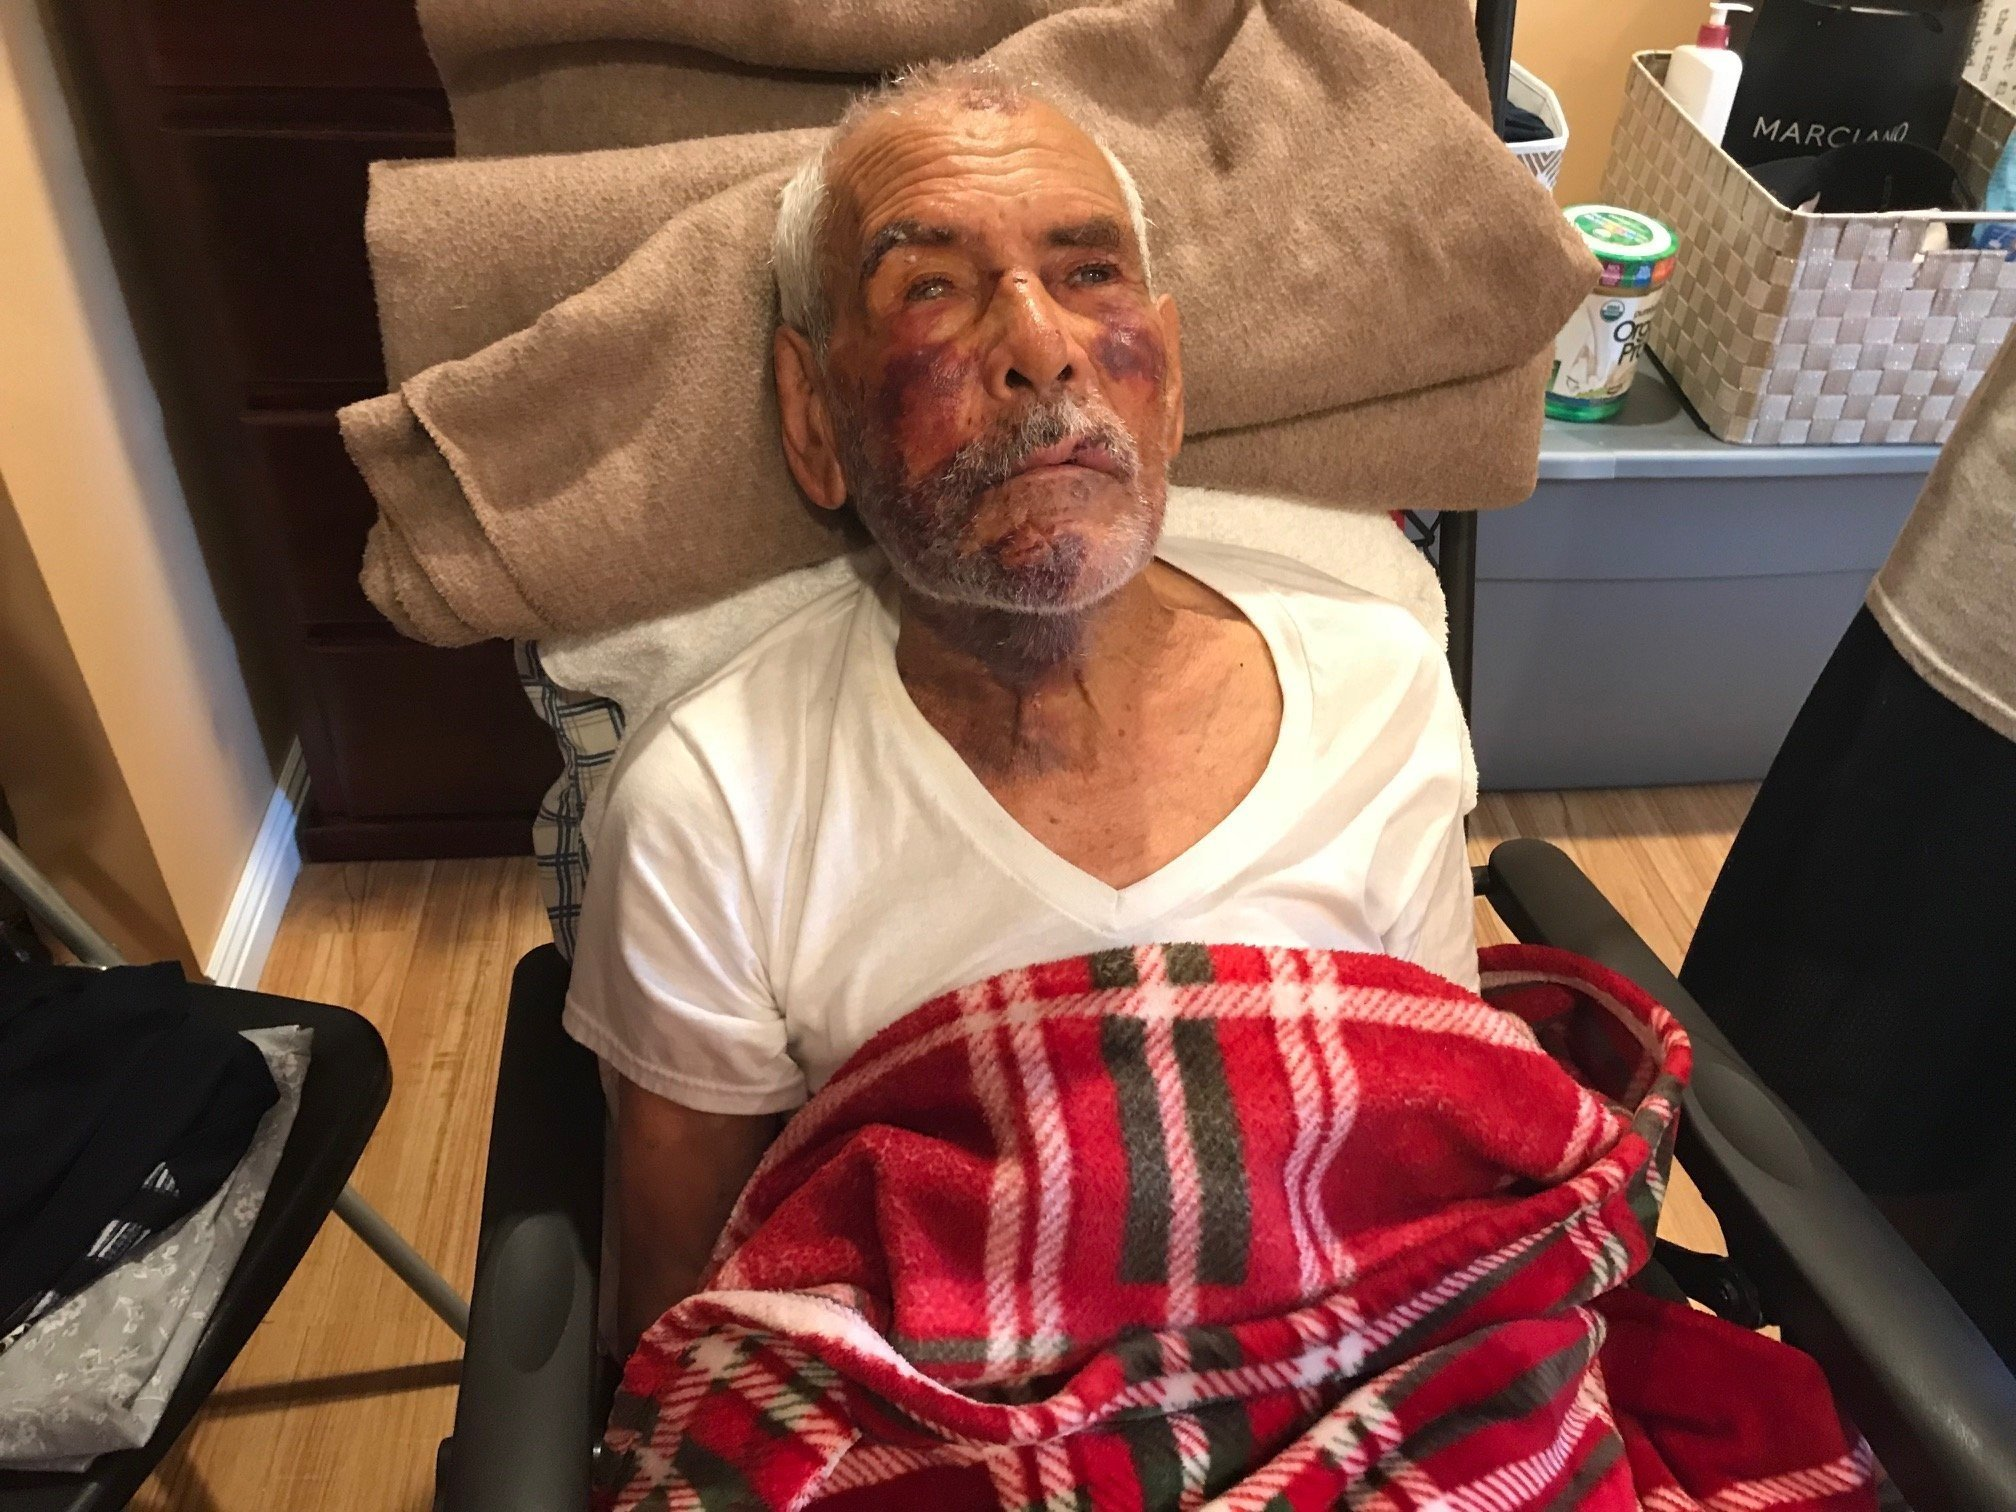 A week after a 91-year-old Mexican man says he was beaten with a concrete block in Southern California, a woman has been arrested in connection with the assault, authorities said.